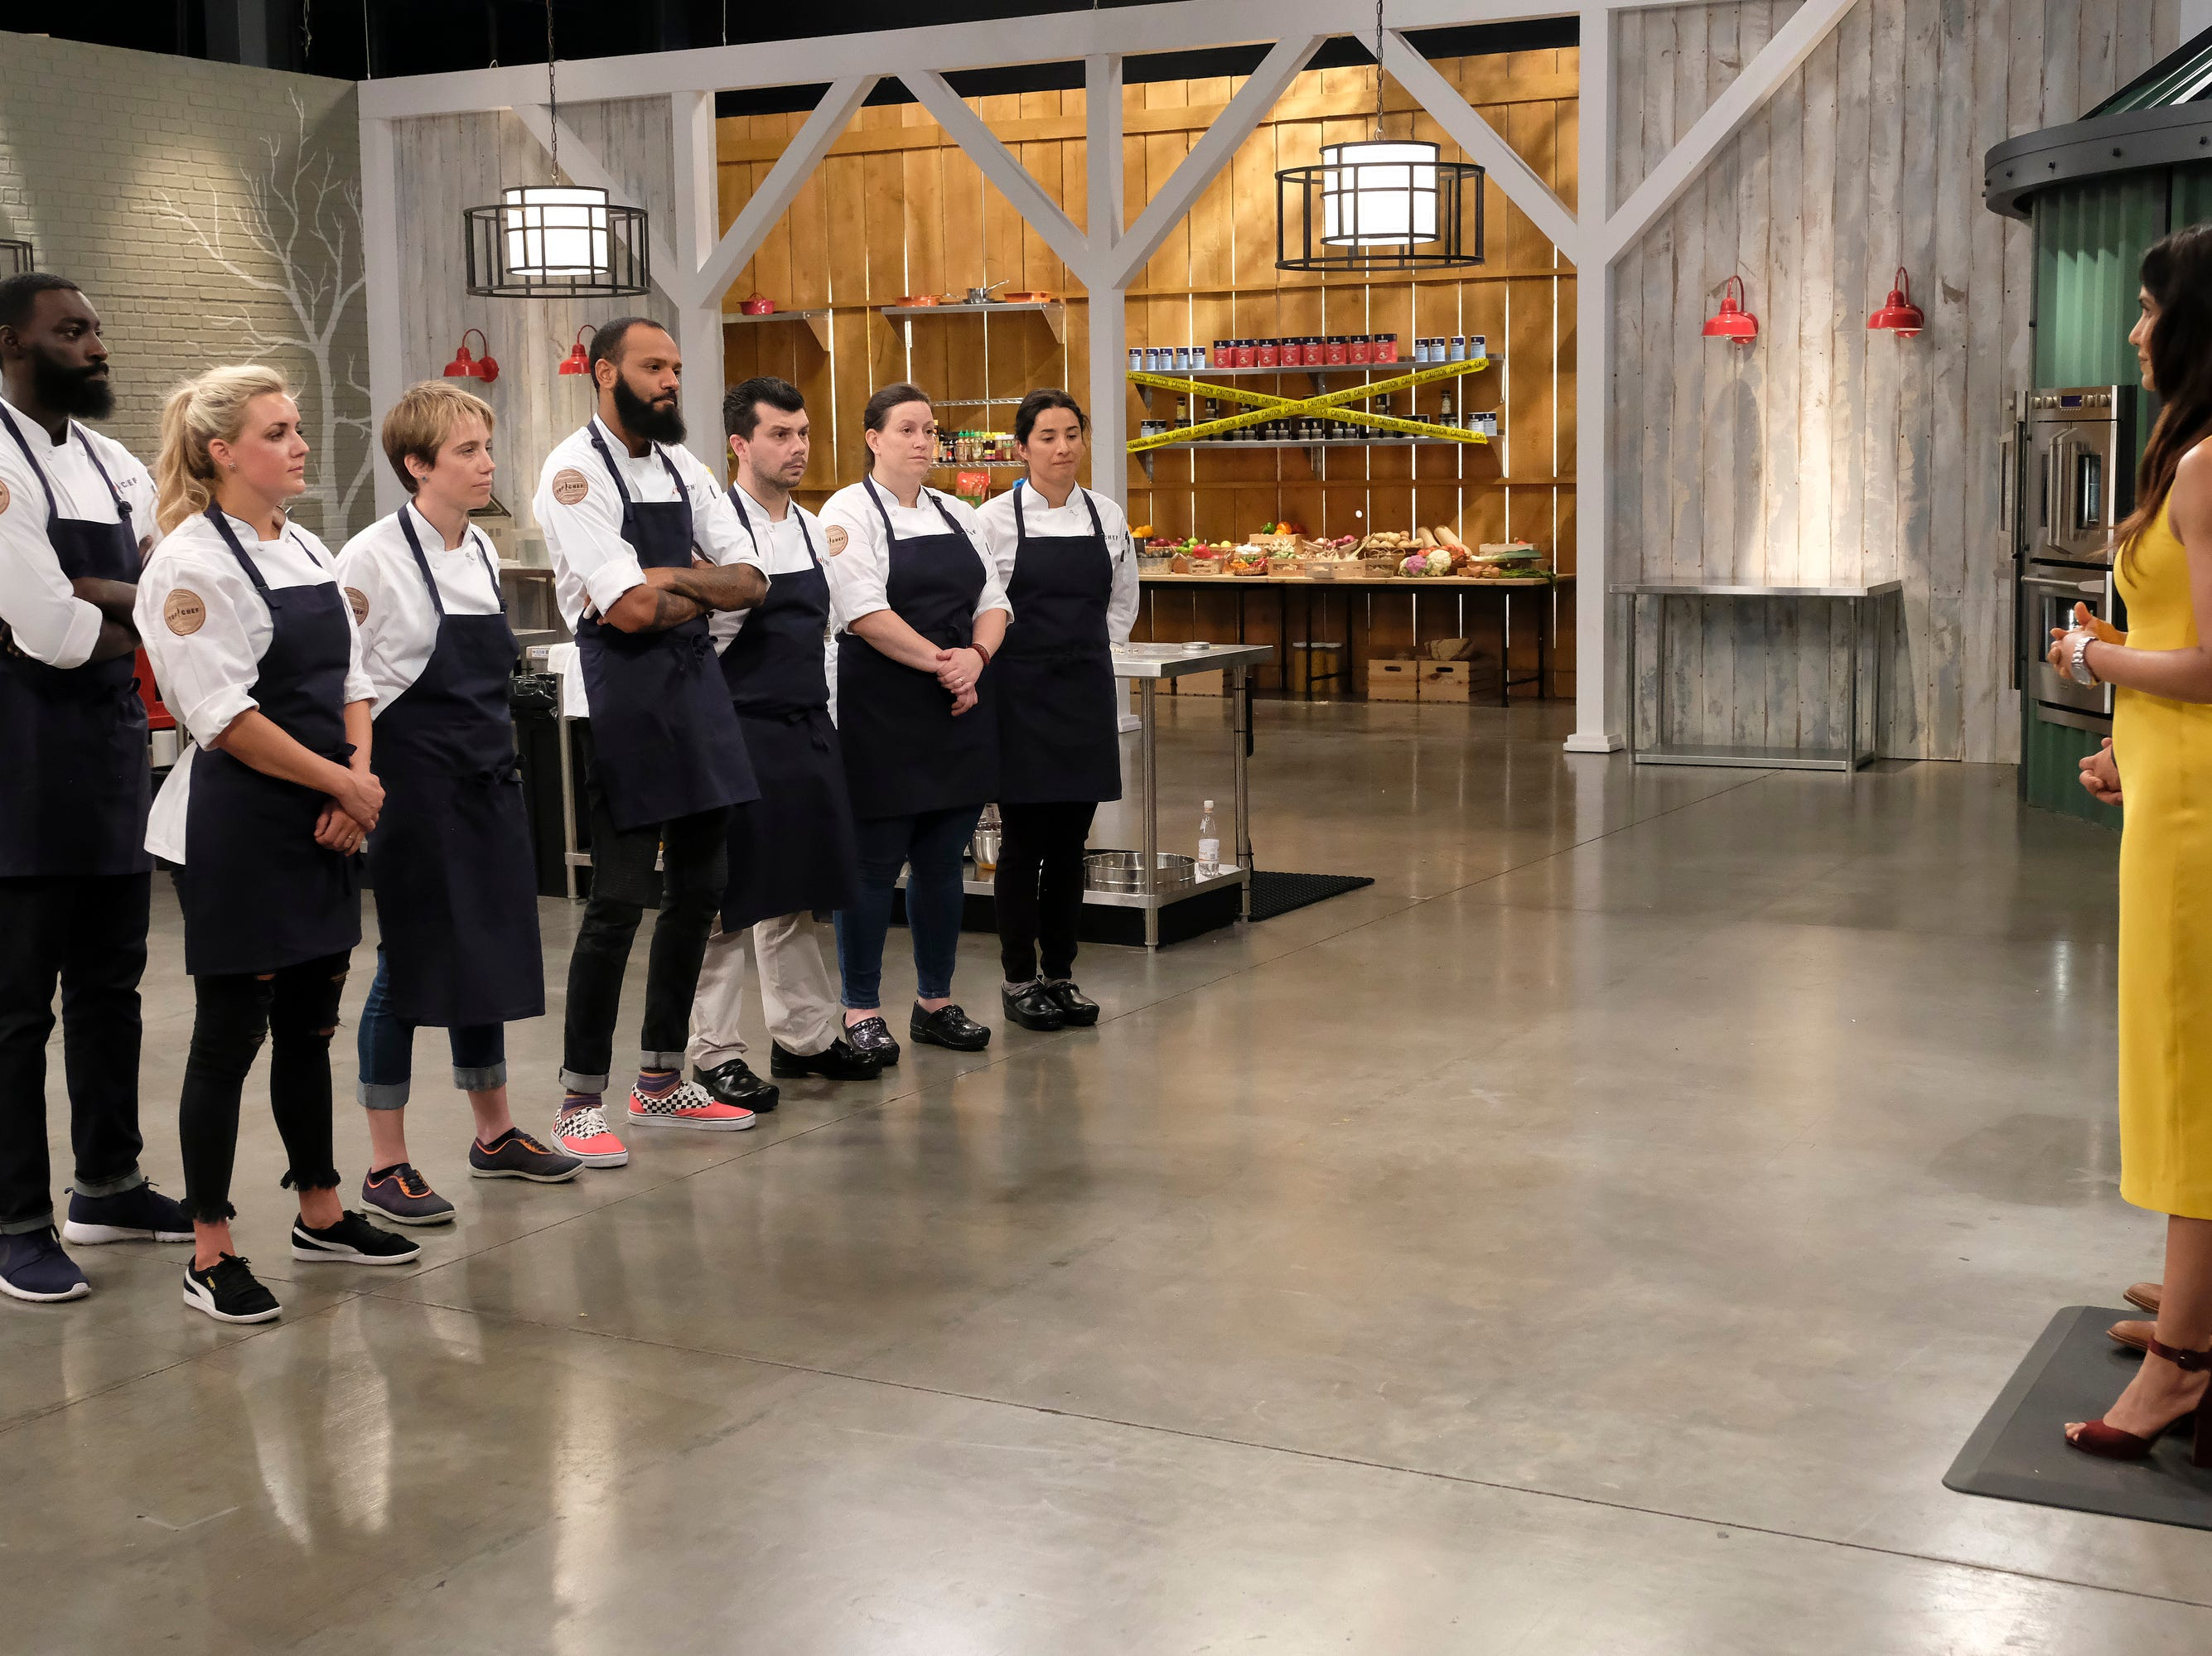 (From left to right): Contestants Eric Adjepong, Kelsey Barnard, Adrienne Wright, Justin Sutherland, Eddie Konrad, Sara Bradley and Michelle Minori listen to directions from host Padma Lakshmi on episode 10 of Bravo's 'Top Chef: Kentucky' season.